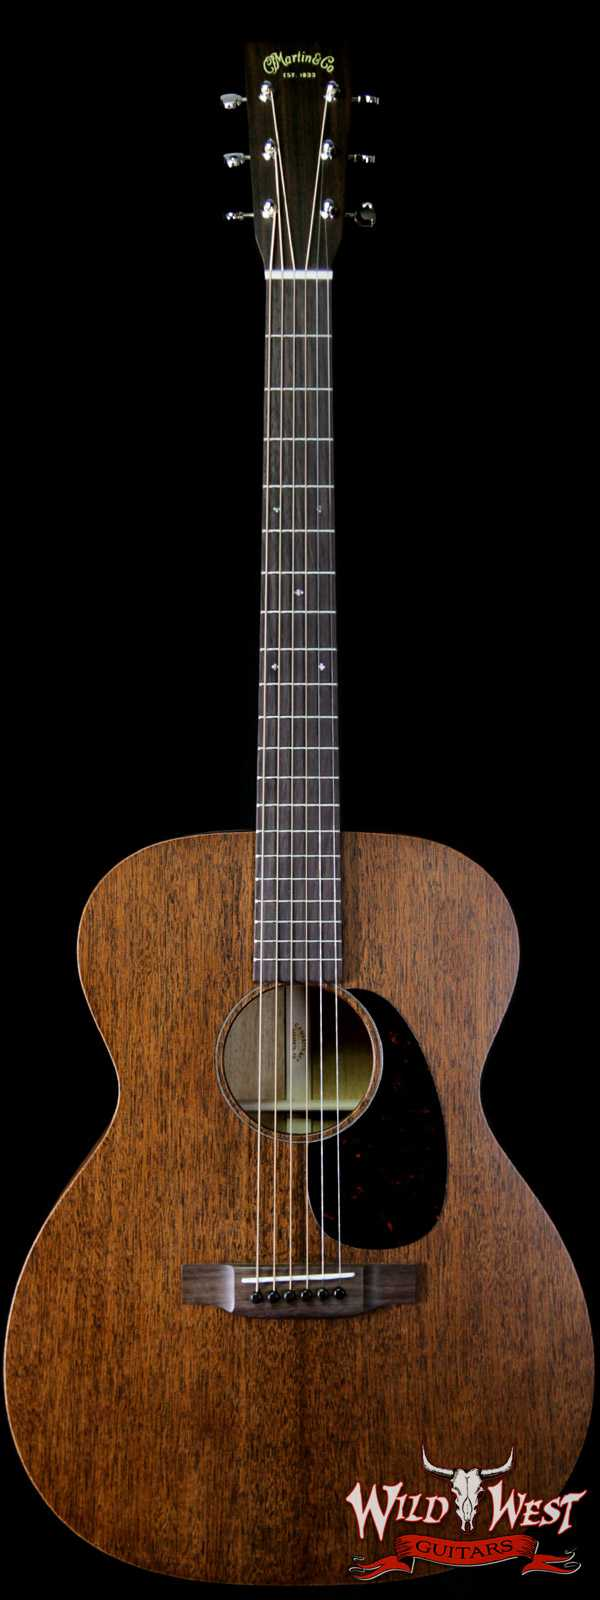 2020 Martin USA 15 Series 000-15M Acoustic Guitar Dark Mahogany